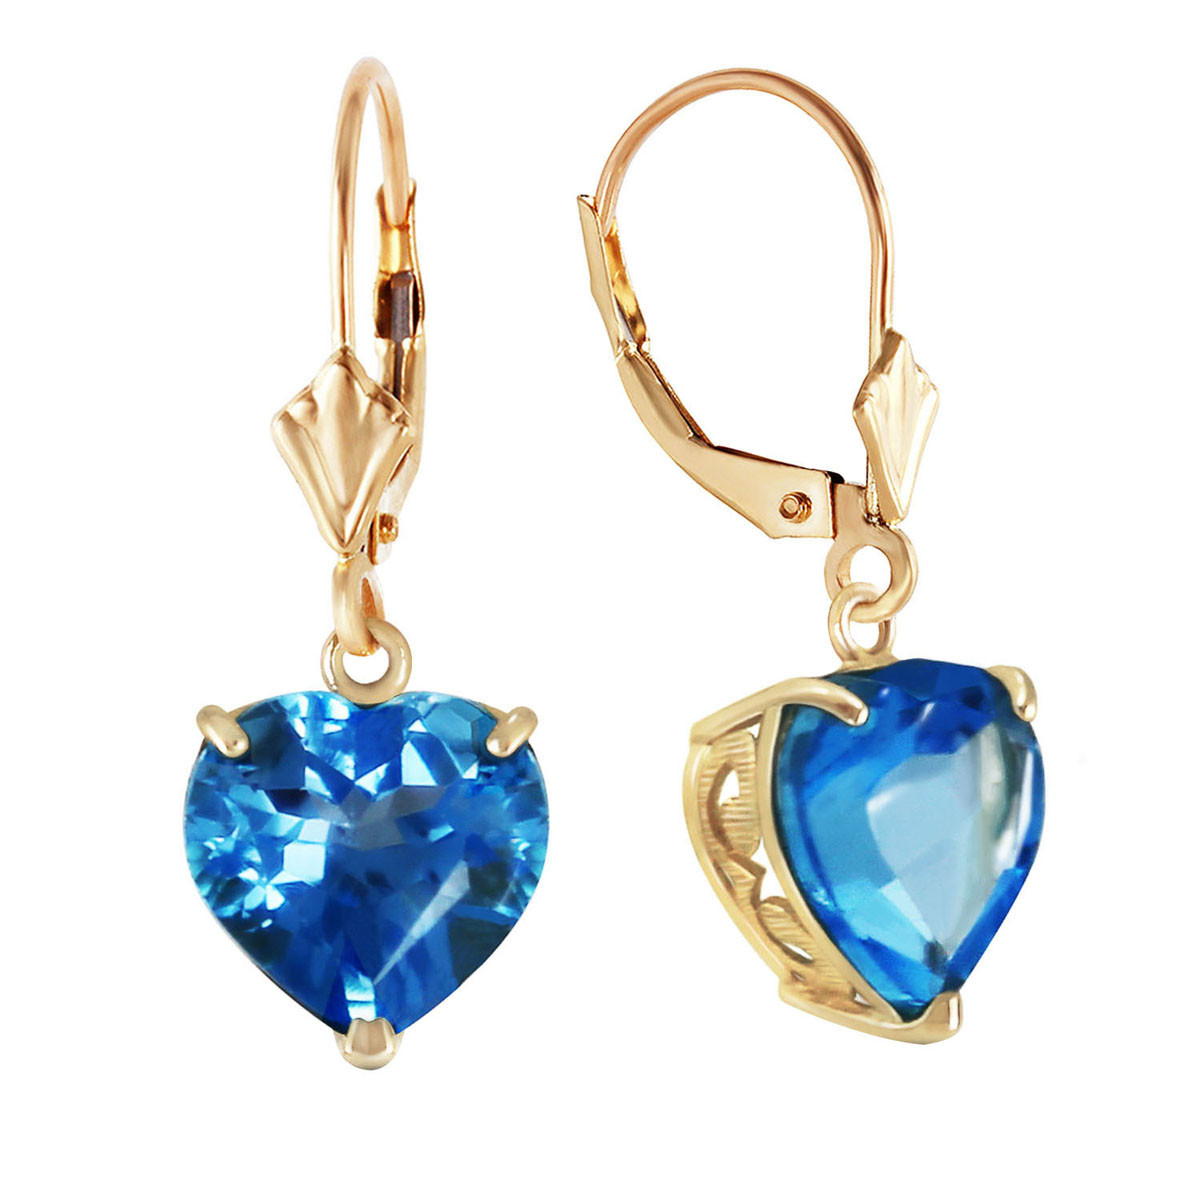 Blue Topaz Large Heart Earrings 12.6 ctw in 9ct Gold